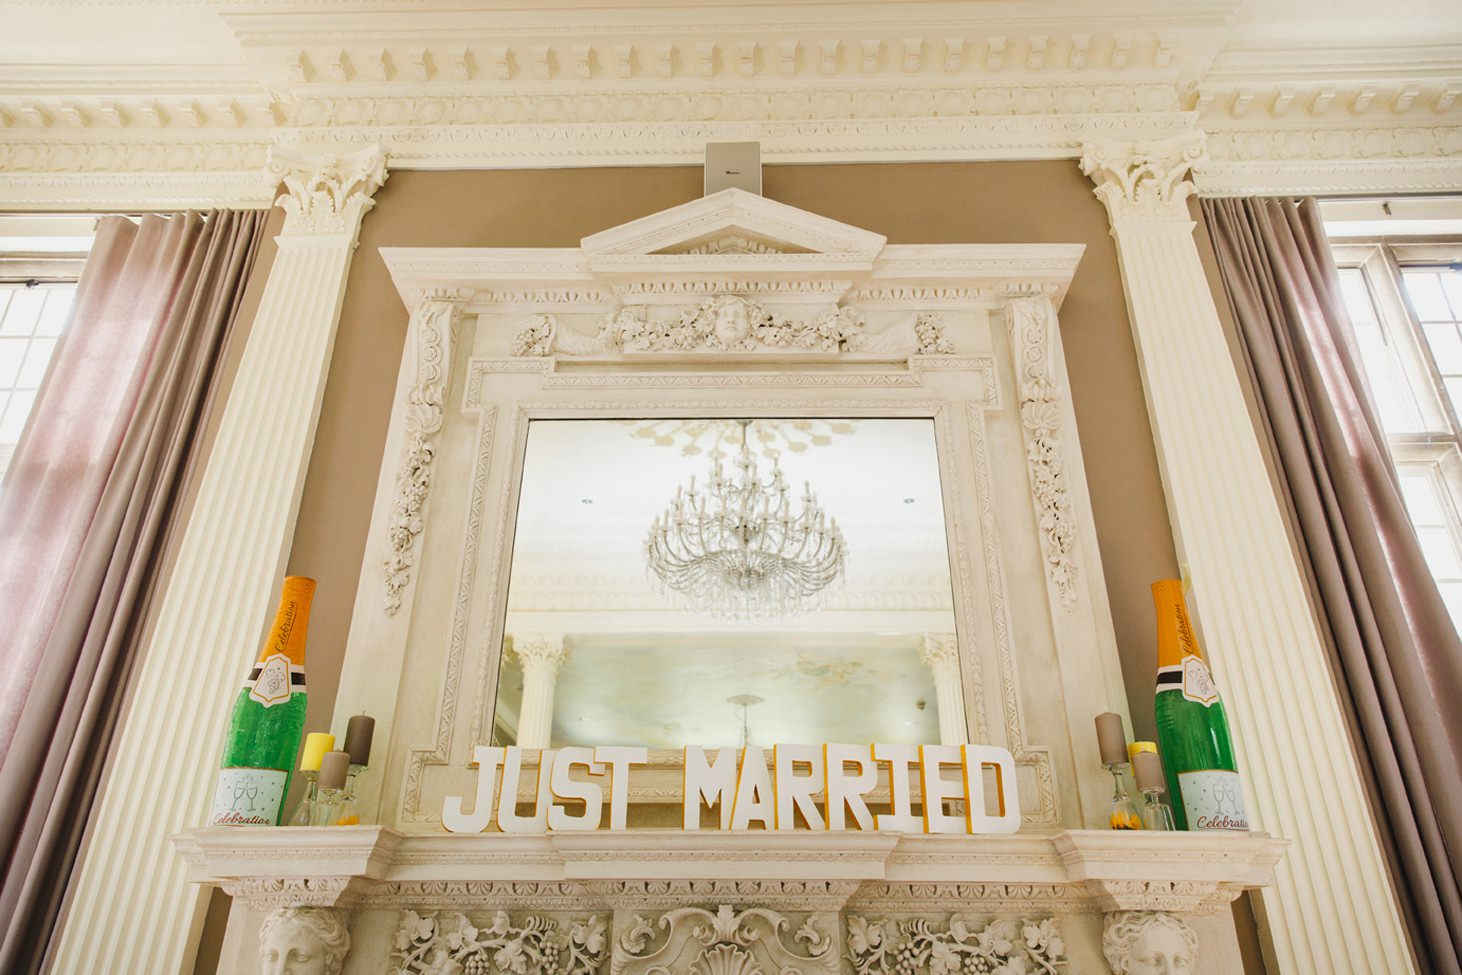 Wycombe Abbey wedding photography just married sign